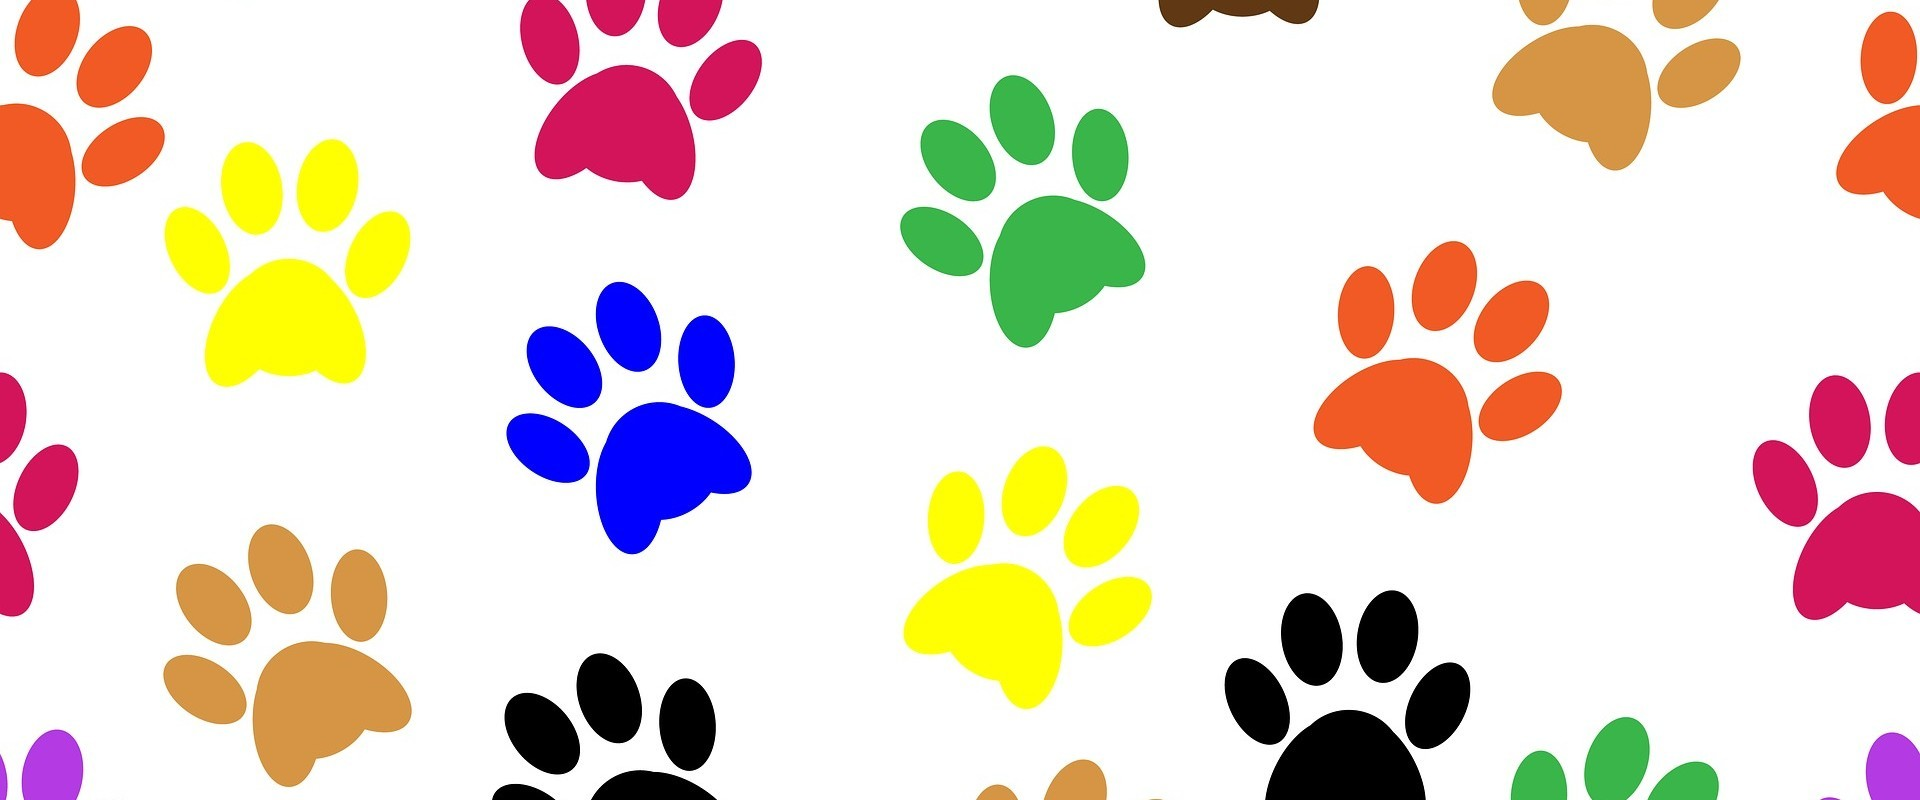 Pawprints about